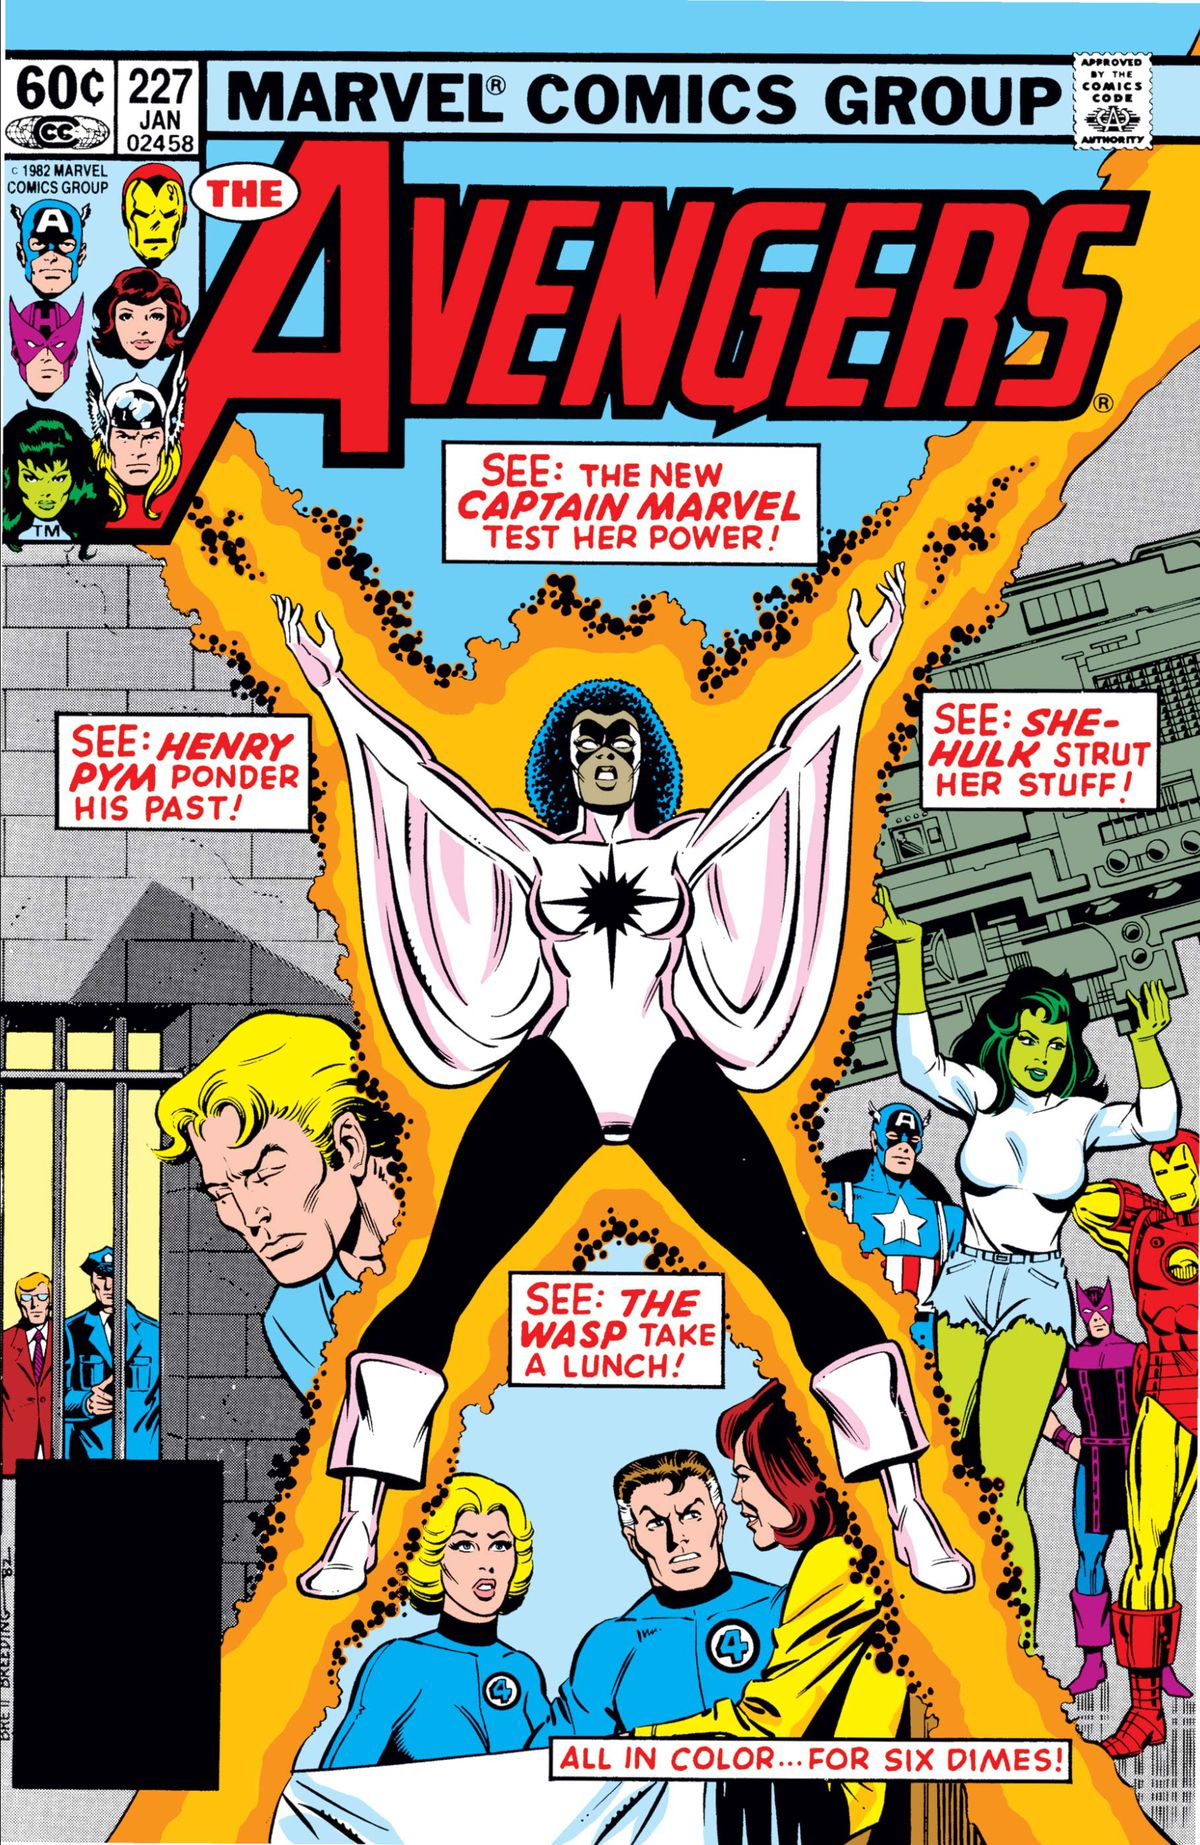 Monica Rambeau as Captain Marvel and the Avengers on the cover of Avengers #27, Marvel Comics (1983).